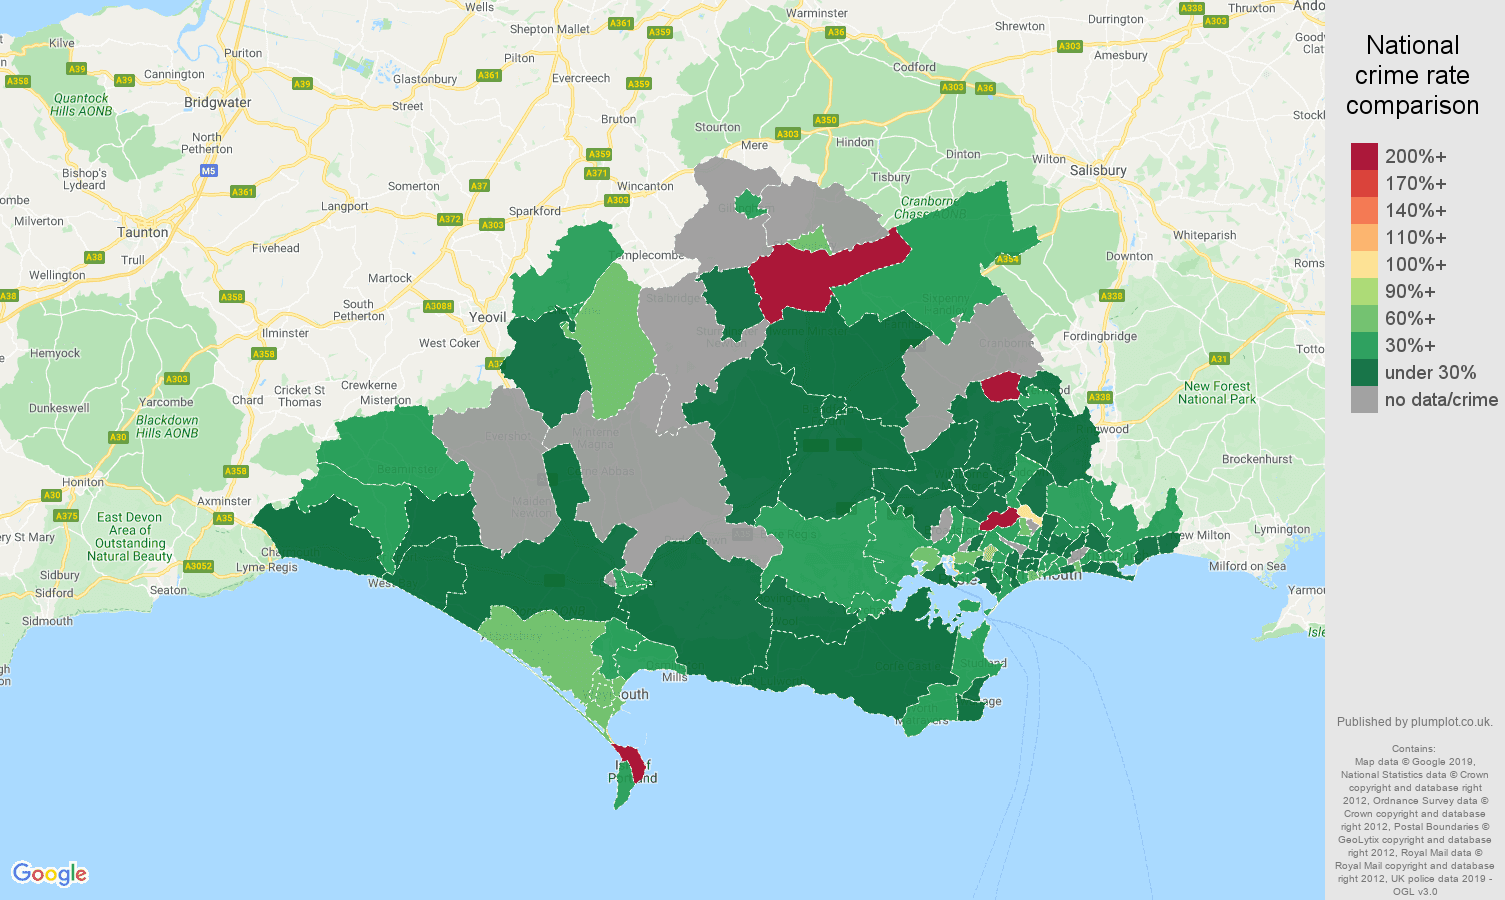 Dorset other crime rate comparison map